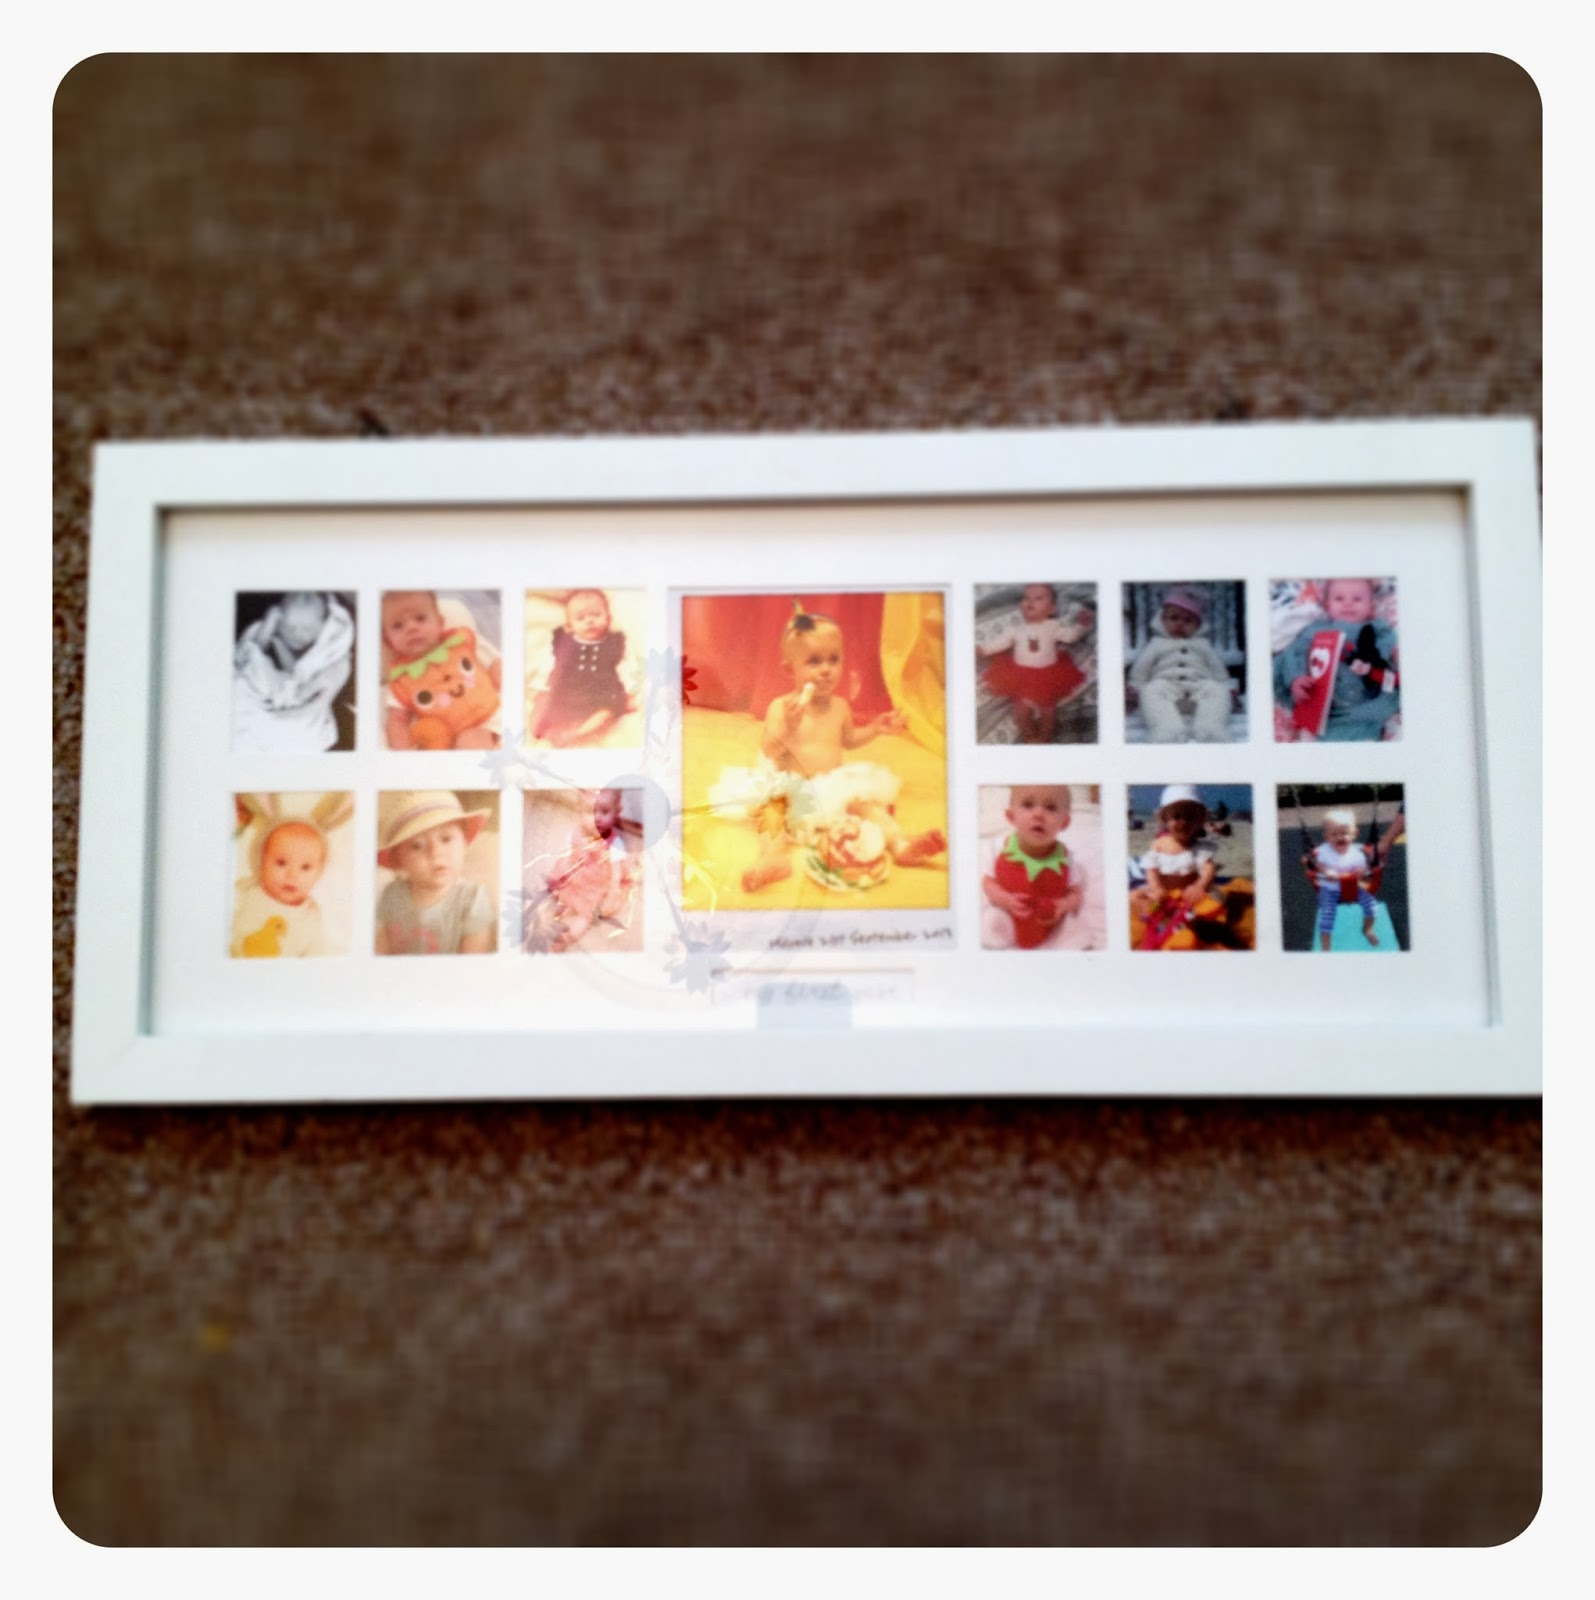 mamasVIB | V. I. BUYS: A photographic keepsake gift thats perfect for mamas-to-be from Mothercare, | A keepsake gift for mamas-to-be | baby shower gift ideas | picture frame | my first year frame | mothercare | mamasVIB